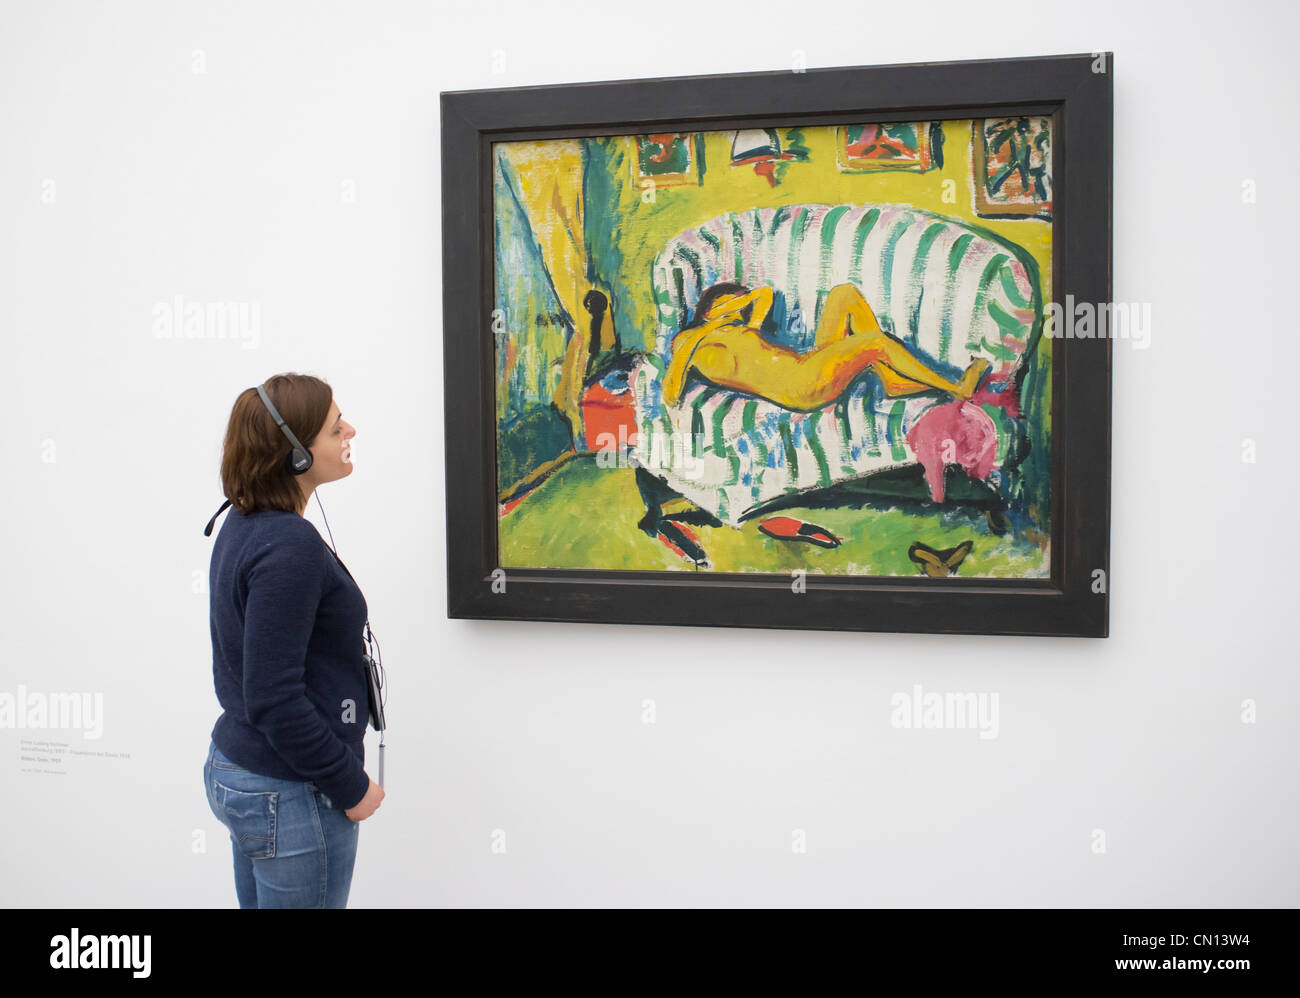 Woman looking at painting Liegendes Madchen by Erich Heckel at Pinakothek Moderne art museum in Munich Germany Stock Photo